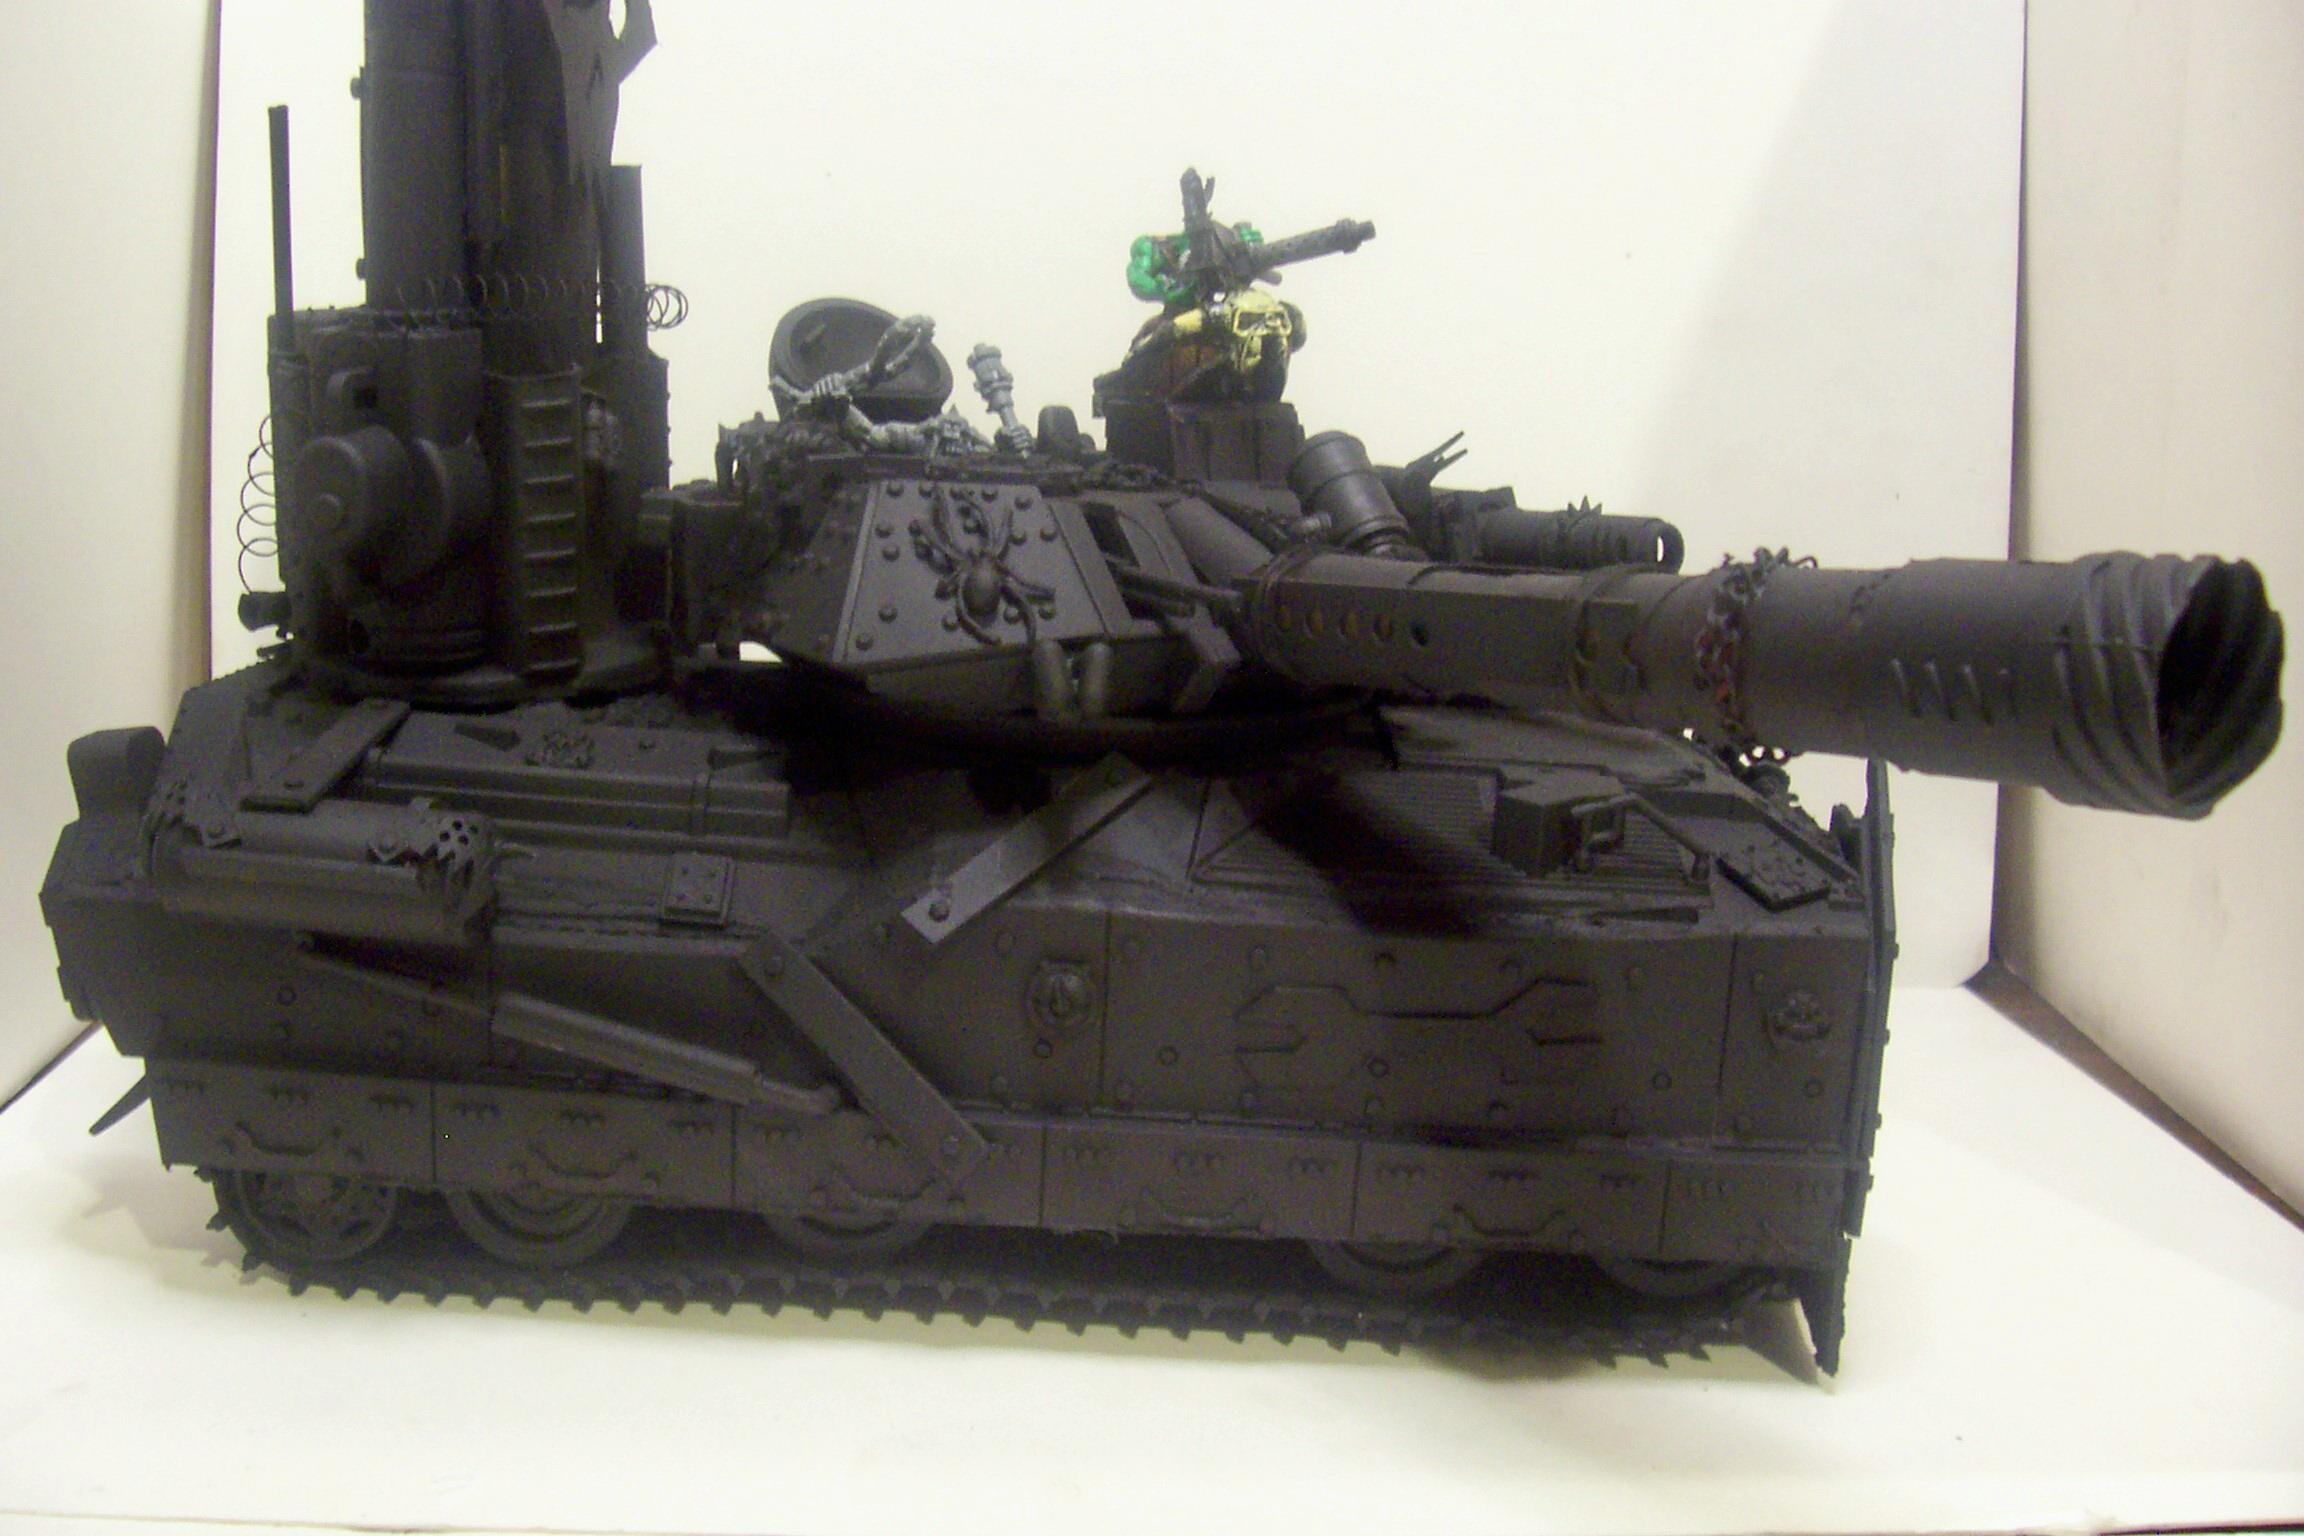 Battlewagon, Orks, Primered, Scratch Build, Tank, Warhammer 40,000